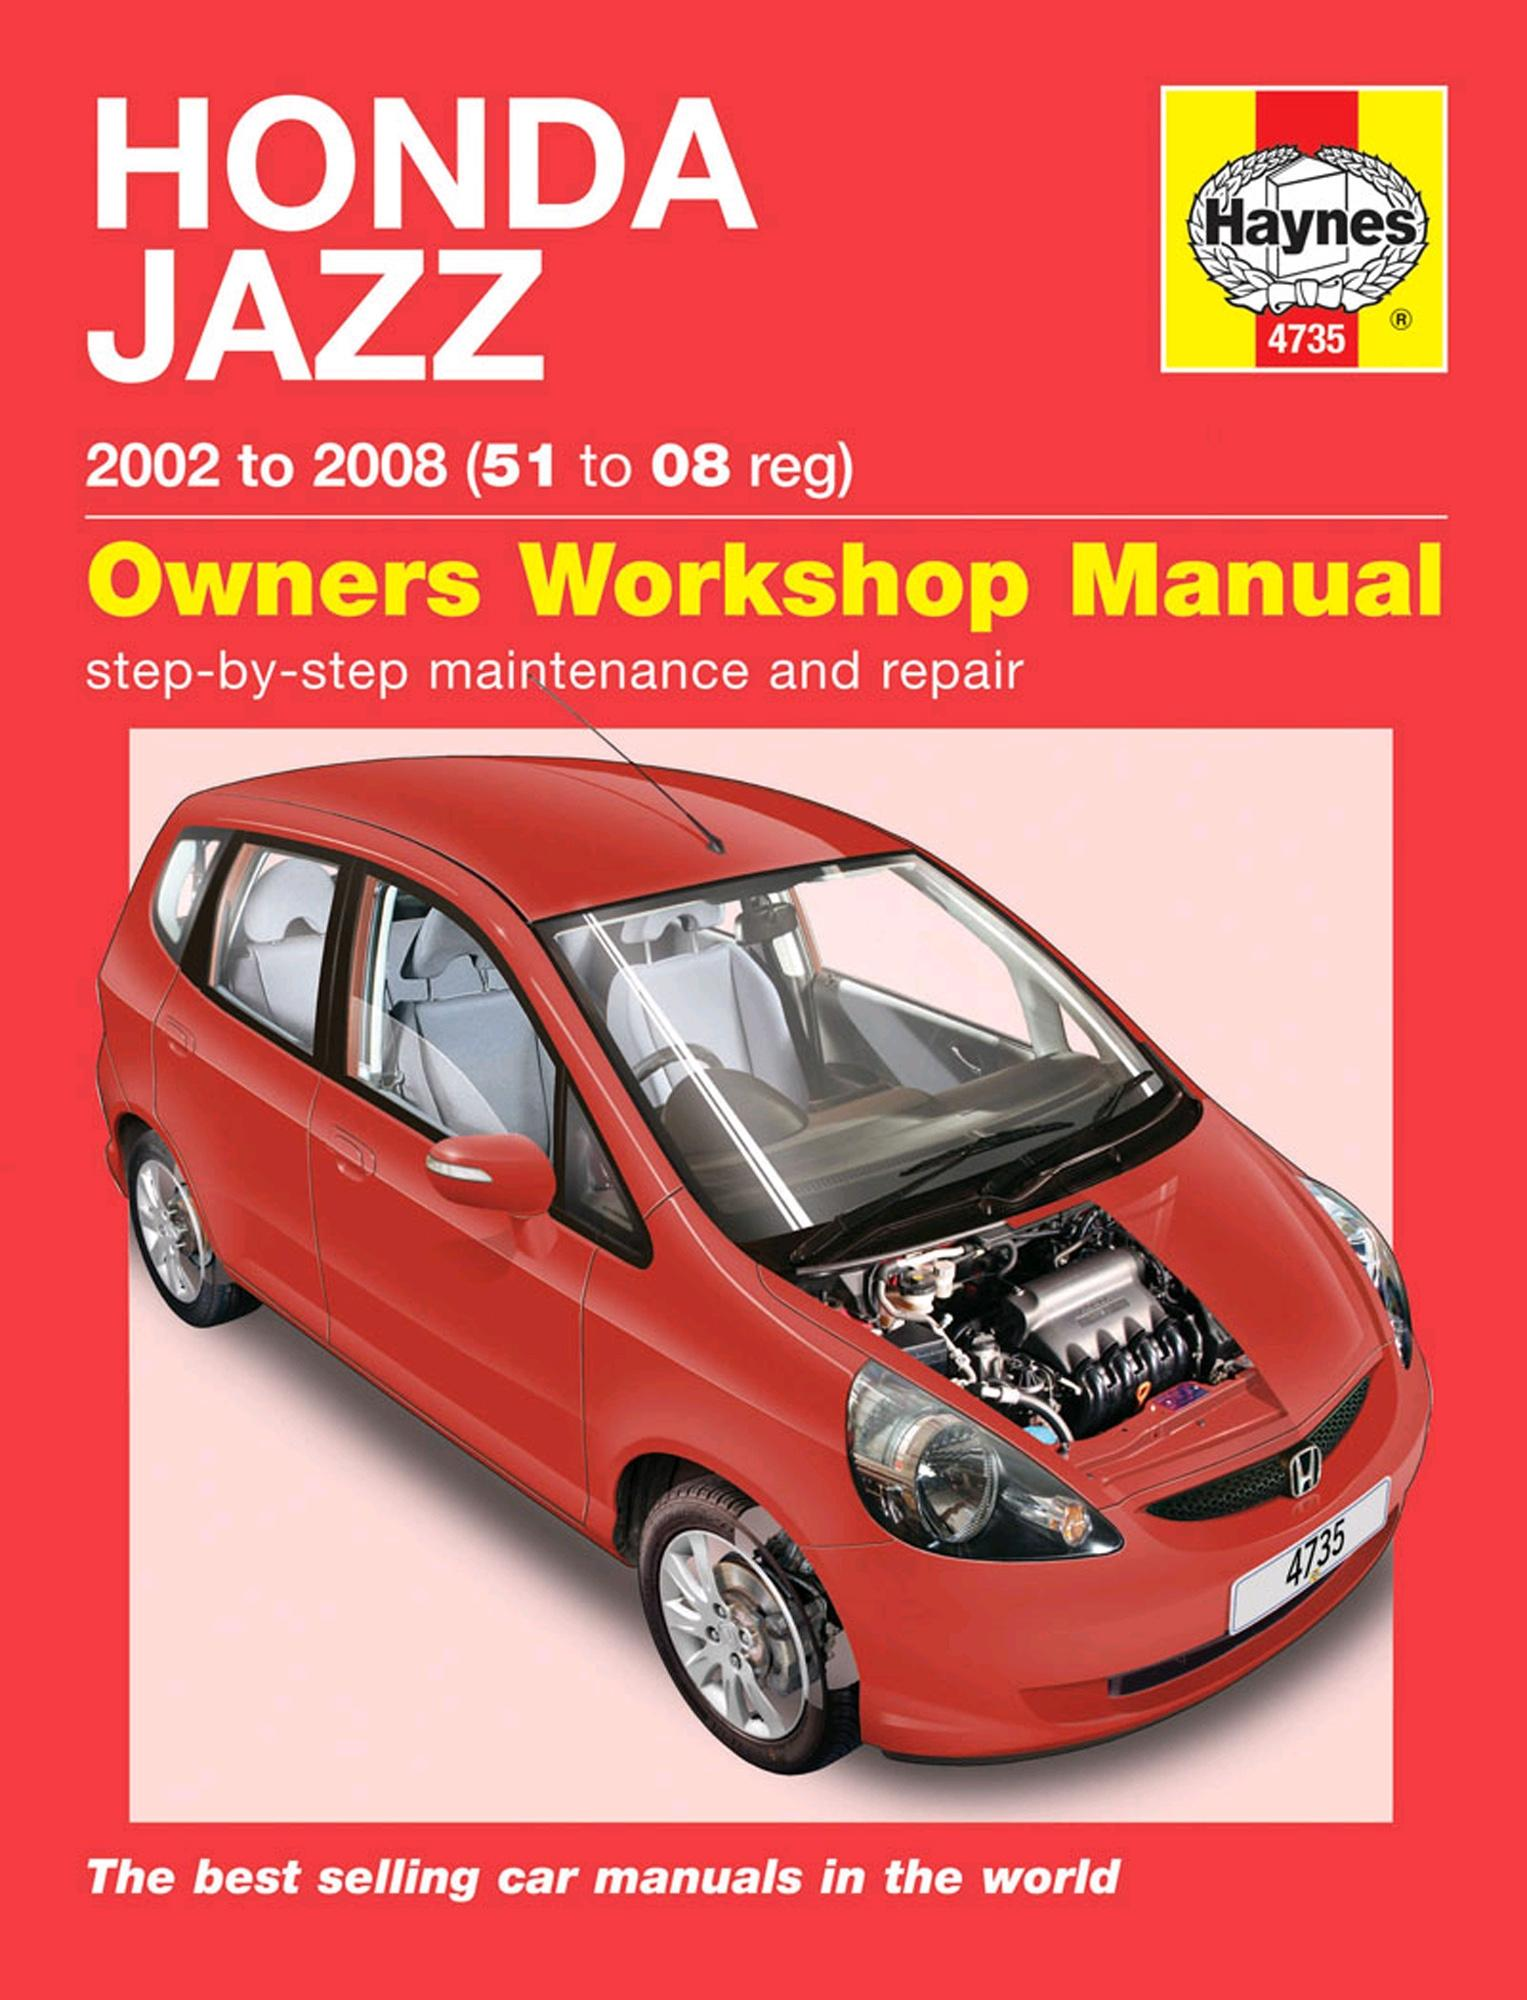 Haynes Owners Workshop Manual Honda Jazz 2002-2008 Petrol Maintenance Repair